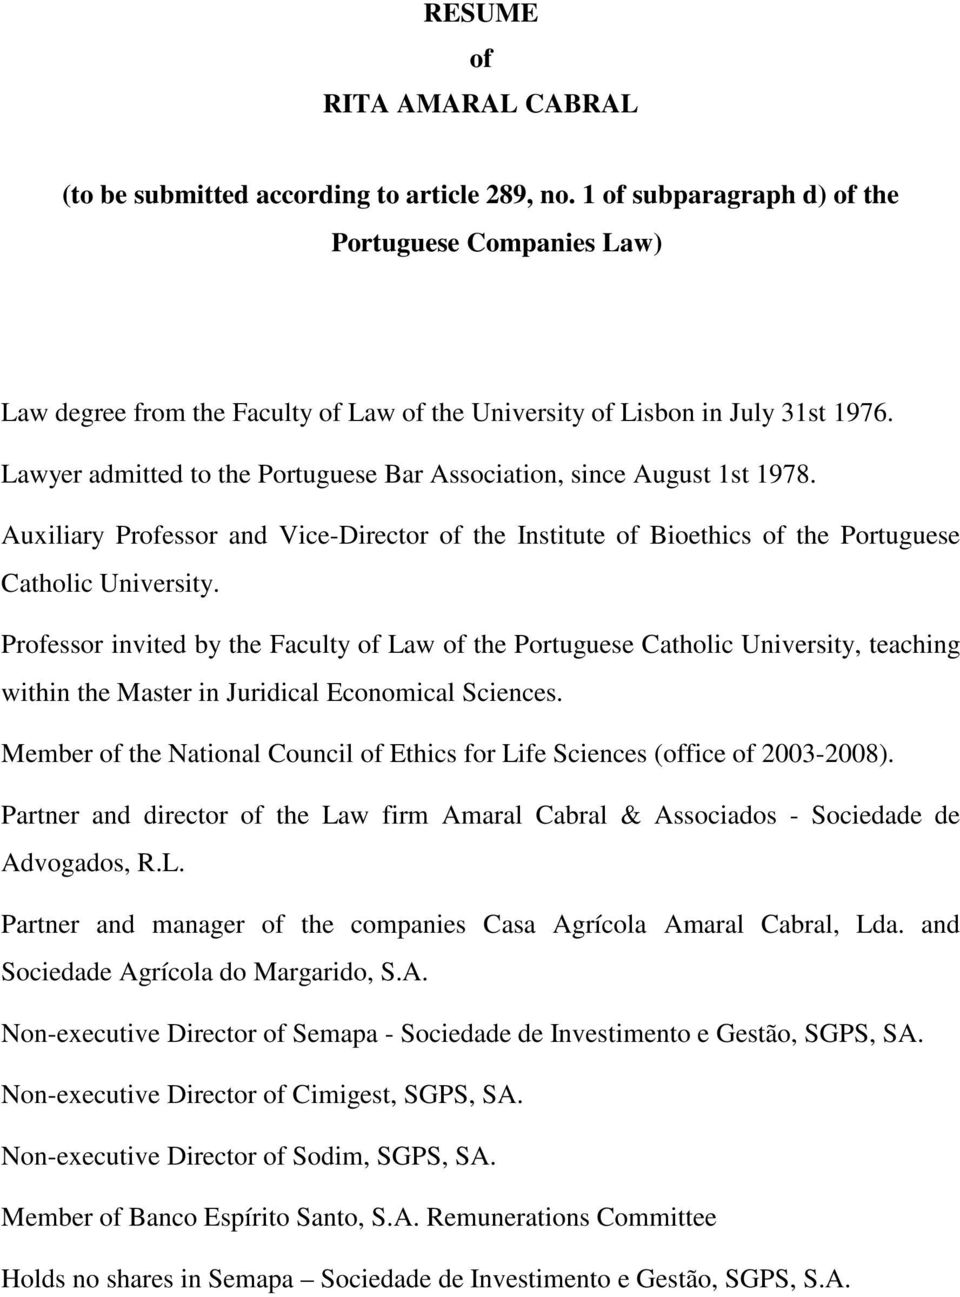 Lawyer admitted to the Portuguese Bar Association, since August 1st 1978. Auxiliary Professor and Vice-Director of the Institute of Bioethics of the Portuguese Catholic University.